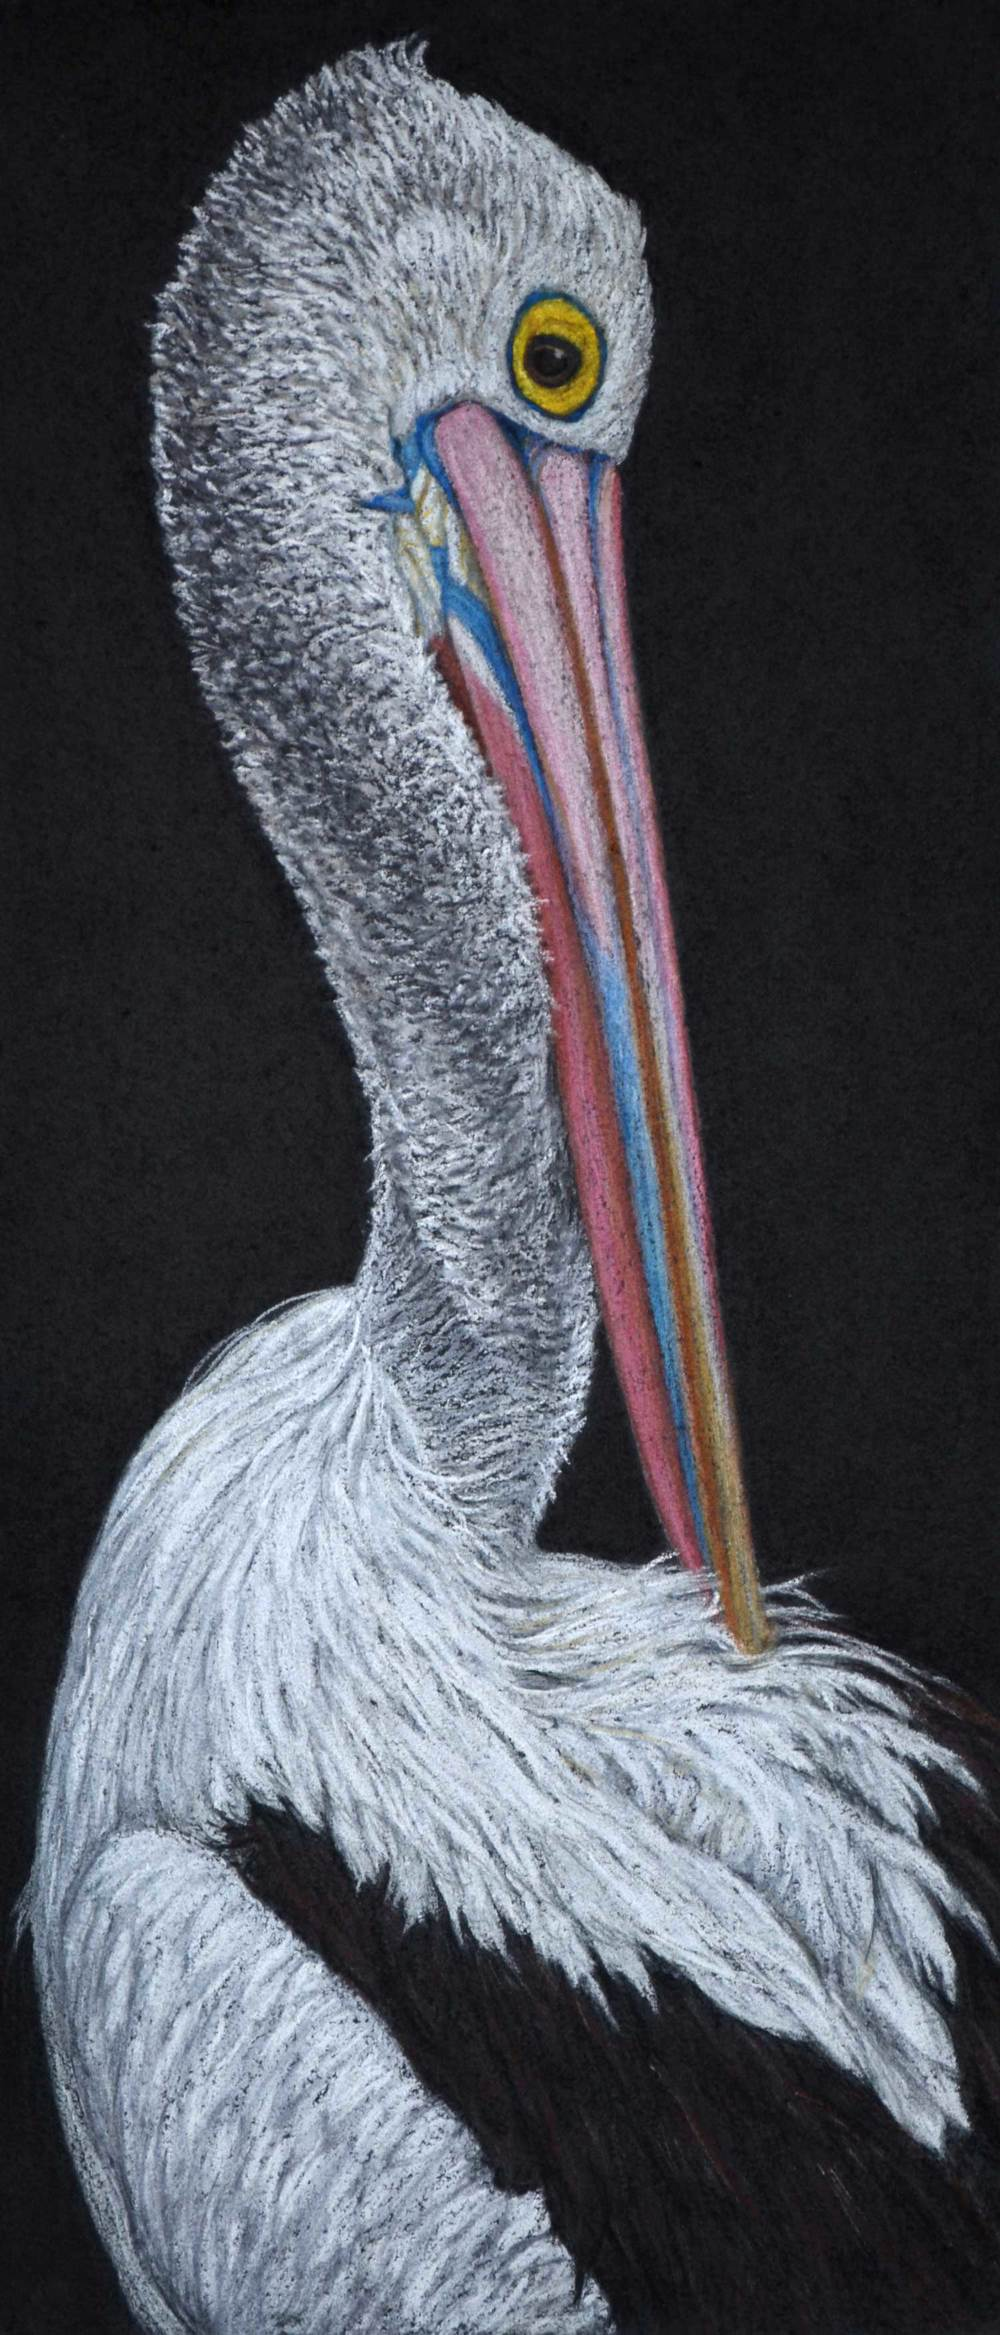 pelican-drawing-rachel-newling_edited-1.jpg